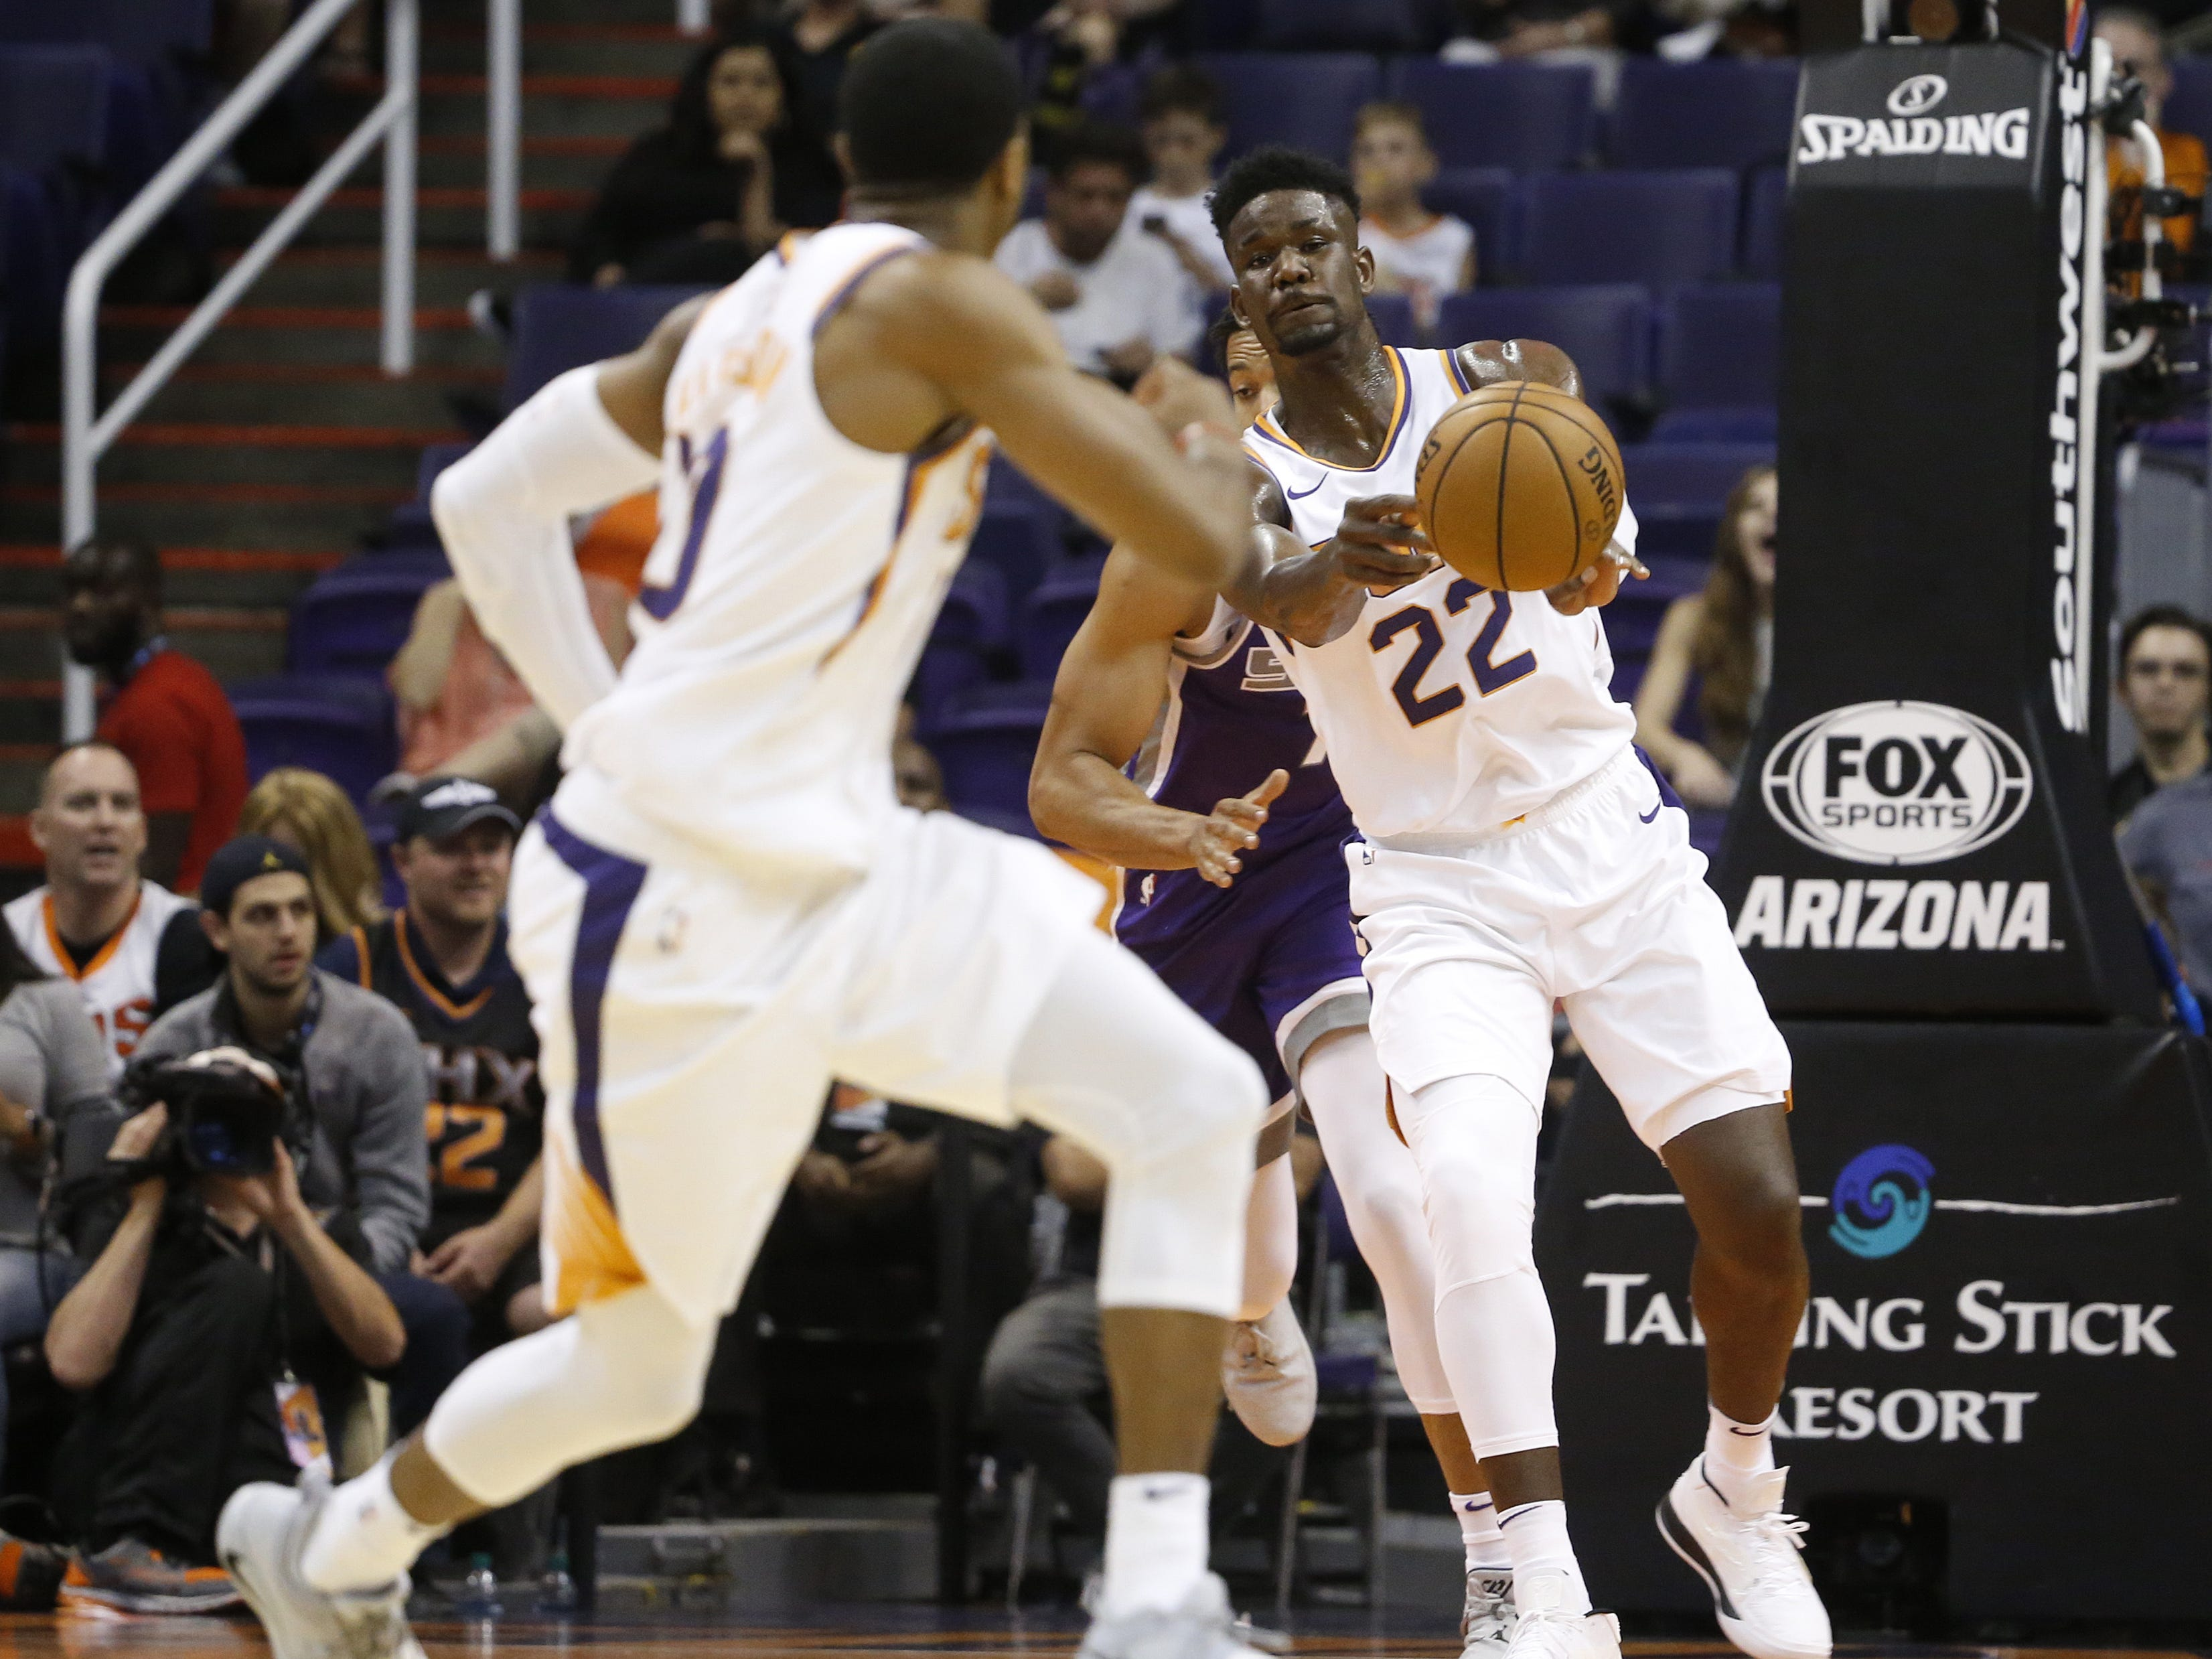 Suns Deandre Ayton (22) passes the ball to teammate Shaquille Harrison after a rebound against the Kings during the first half at Talking Stick Resort Arena in Phoenix, Ariz. on October 1, 2018.